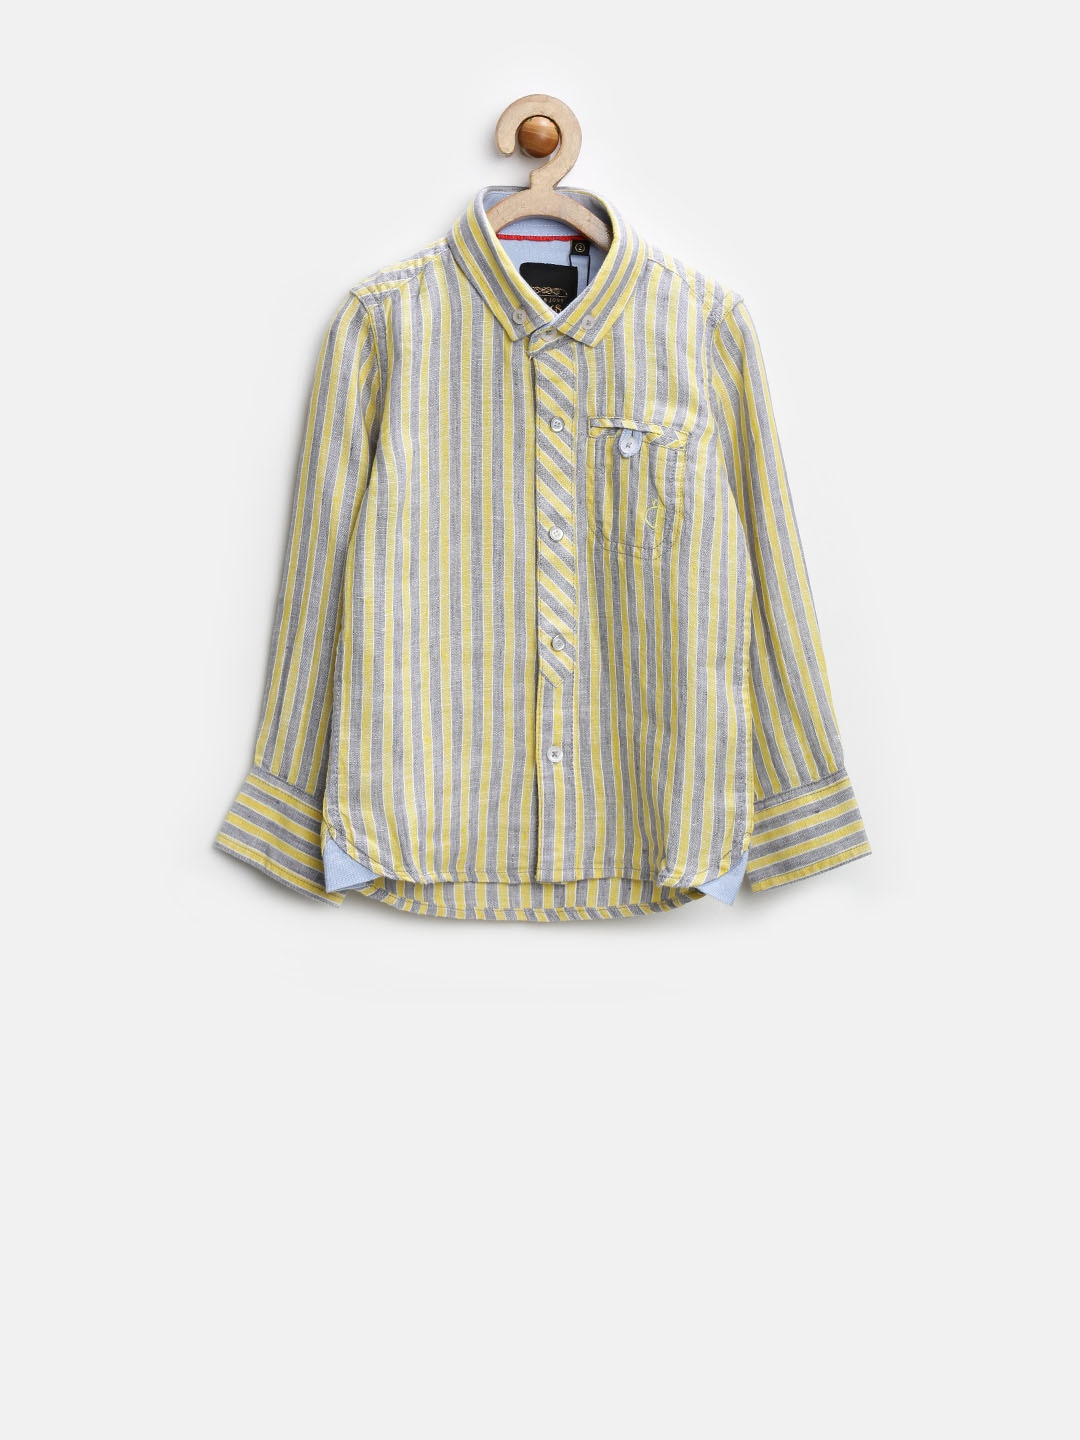 Gini and Jony Gold Boys Yellow & Grey Striped Linen Shirt